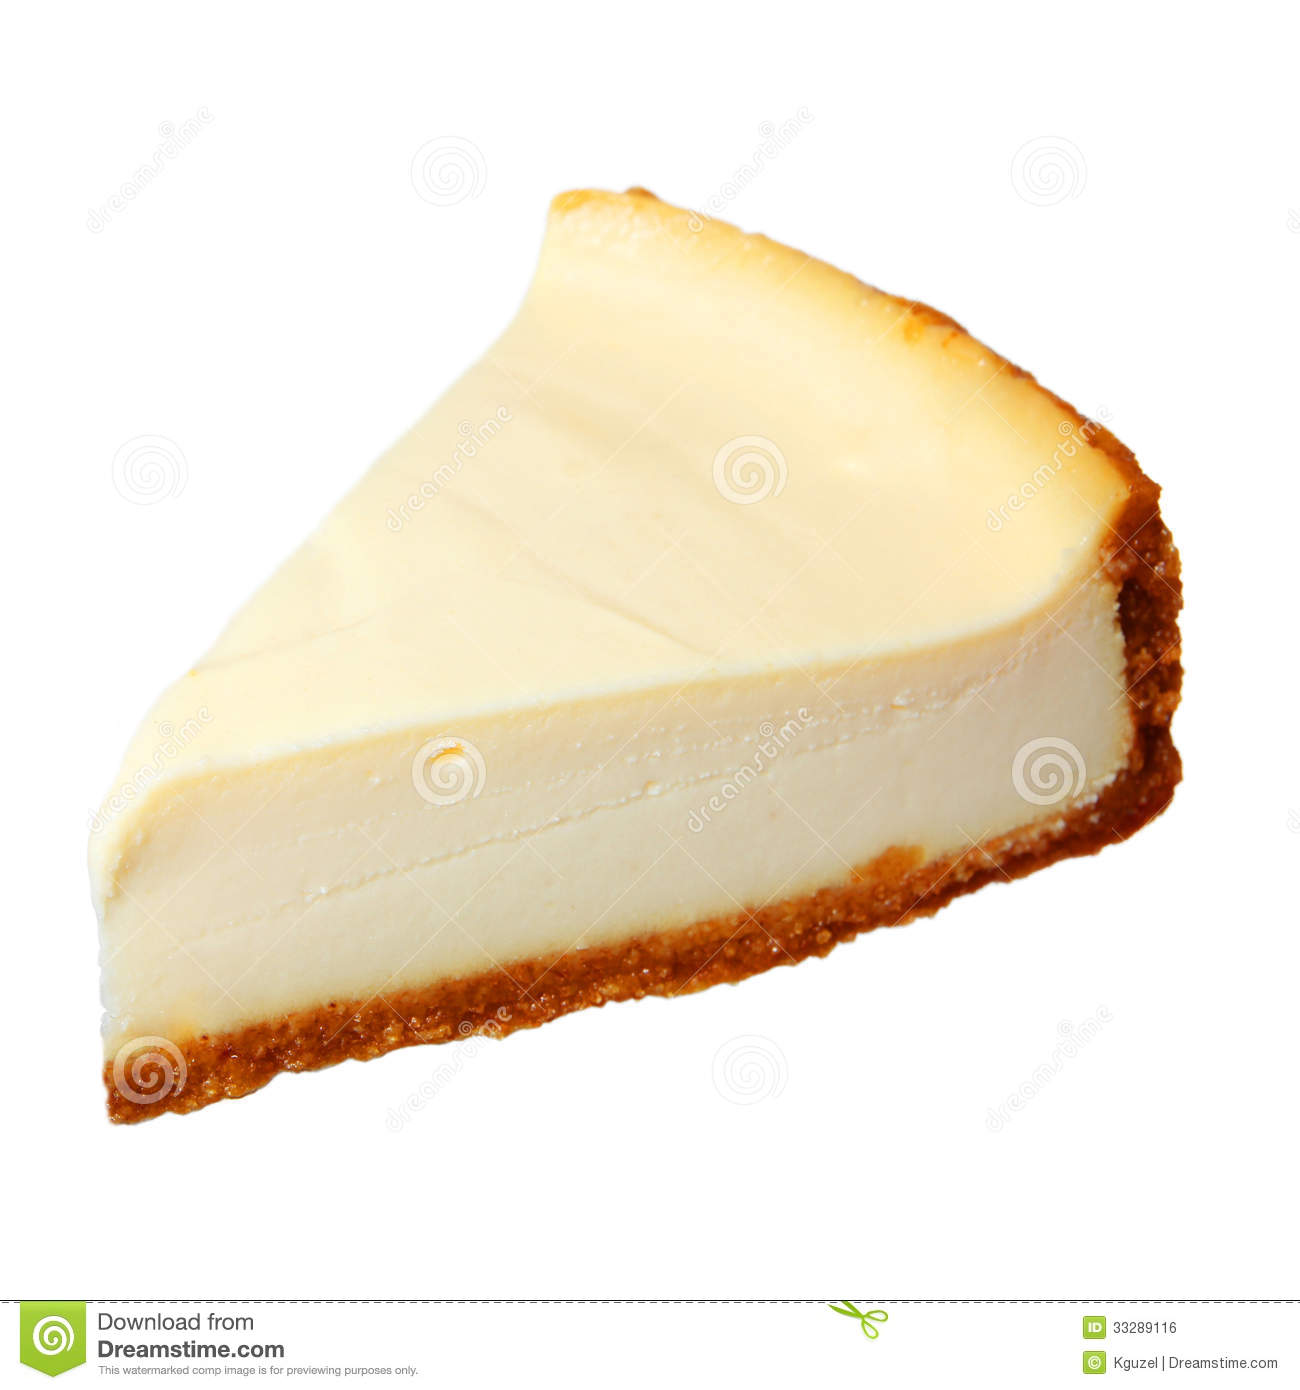 Cheesecake Images Clip Art : Cheesecake Clipart   Cliparts